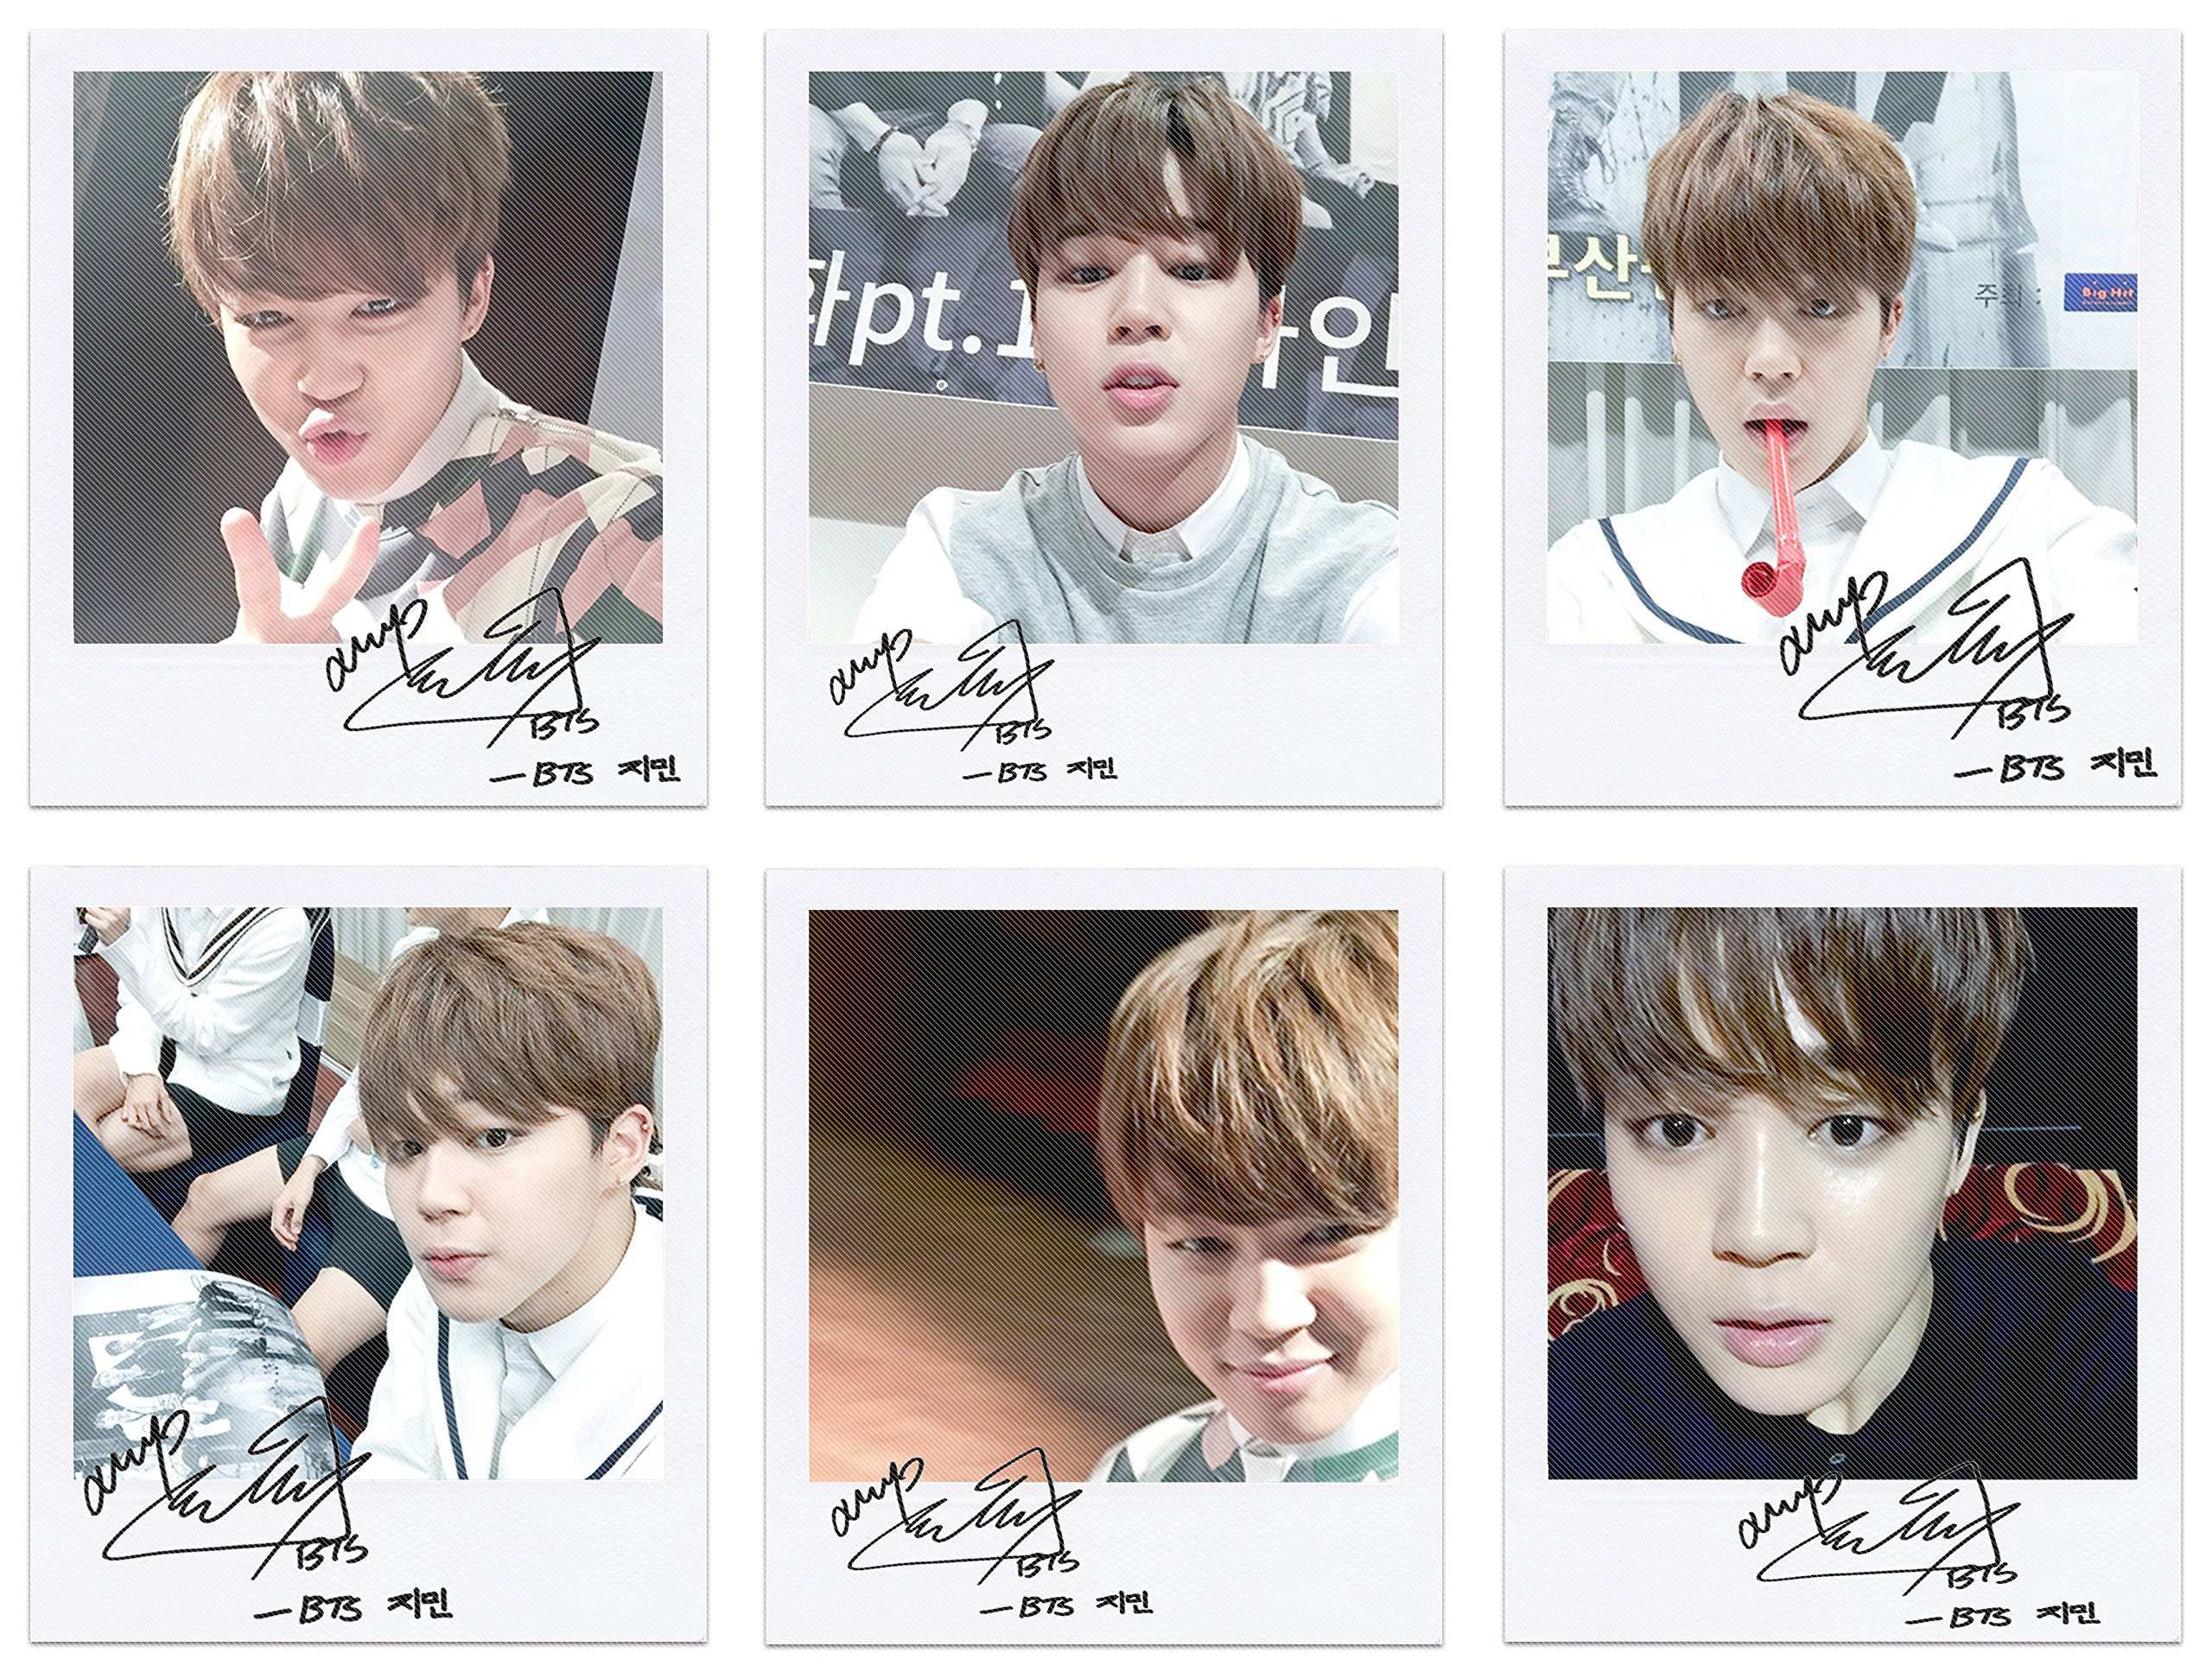 BTS bangtan boys fancafe jimin self wide polaroid photo set